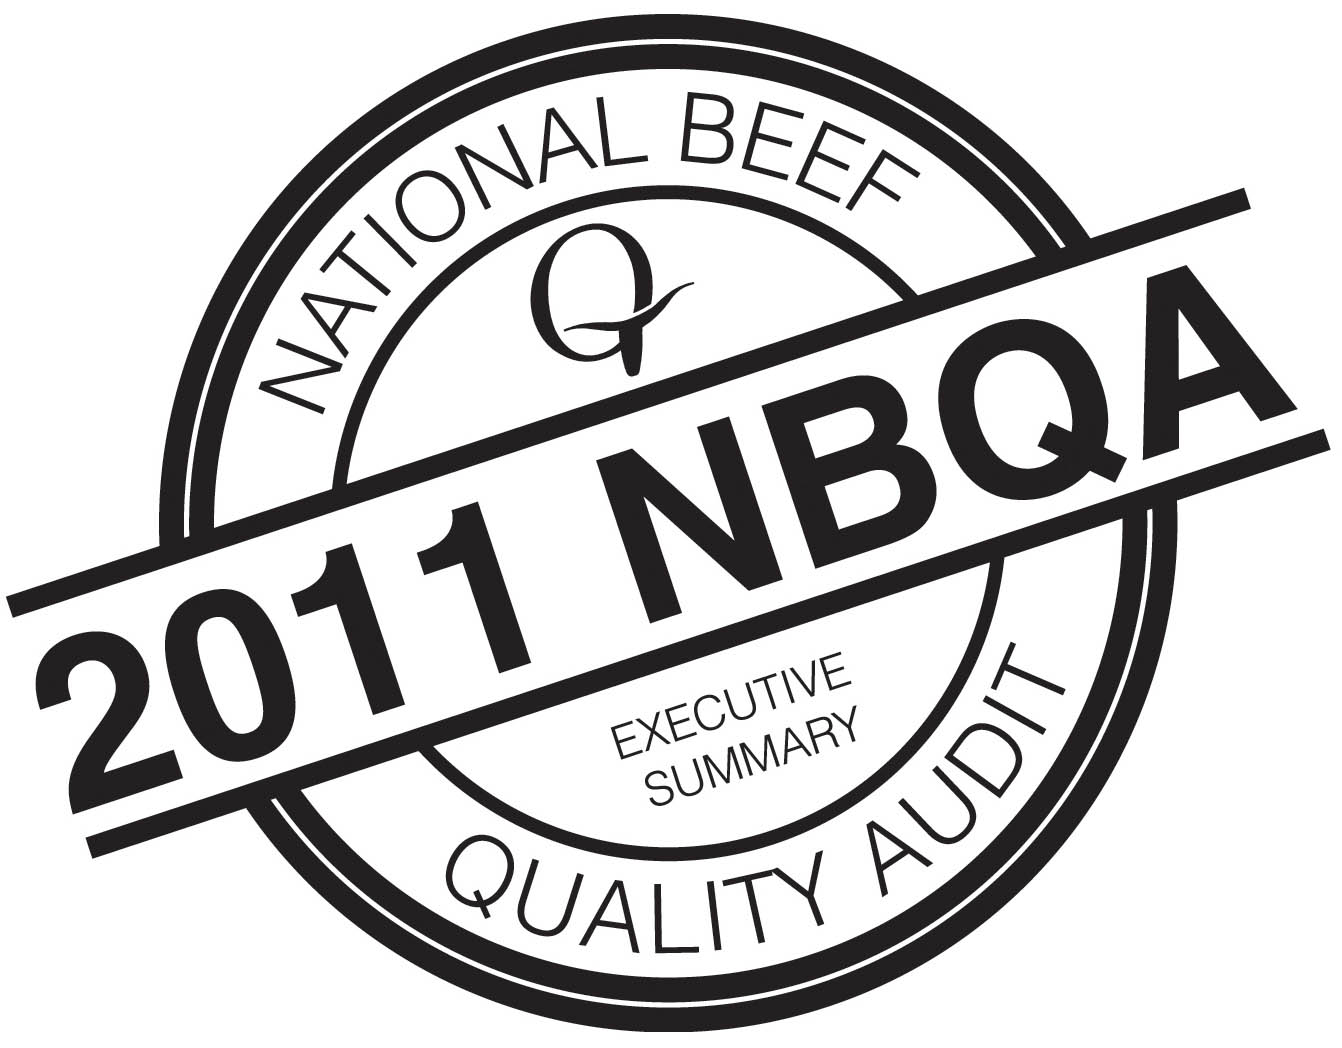 2011 National Beef Quality Audit